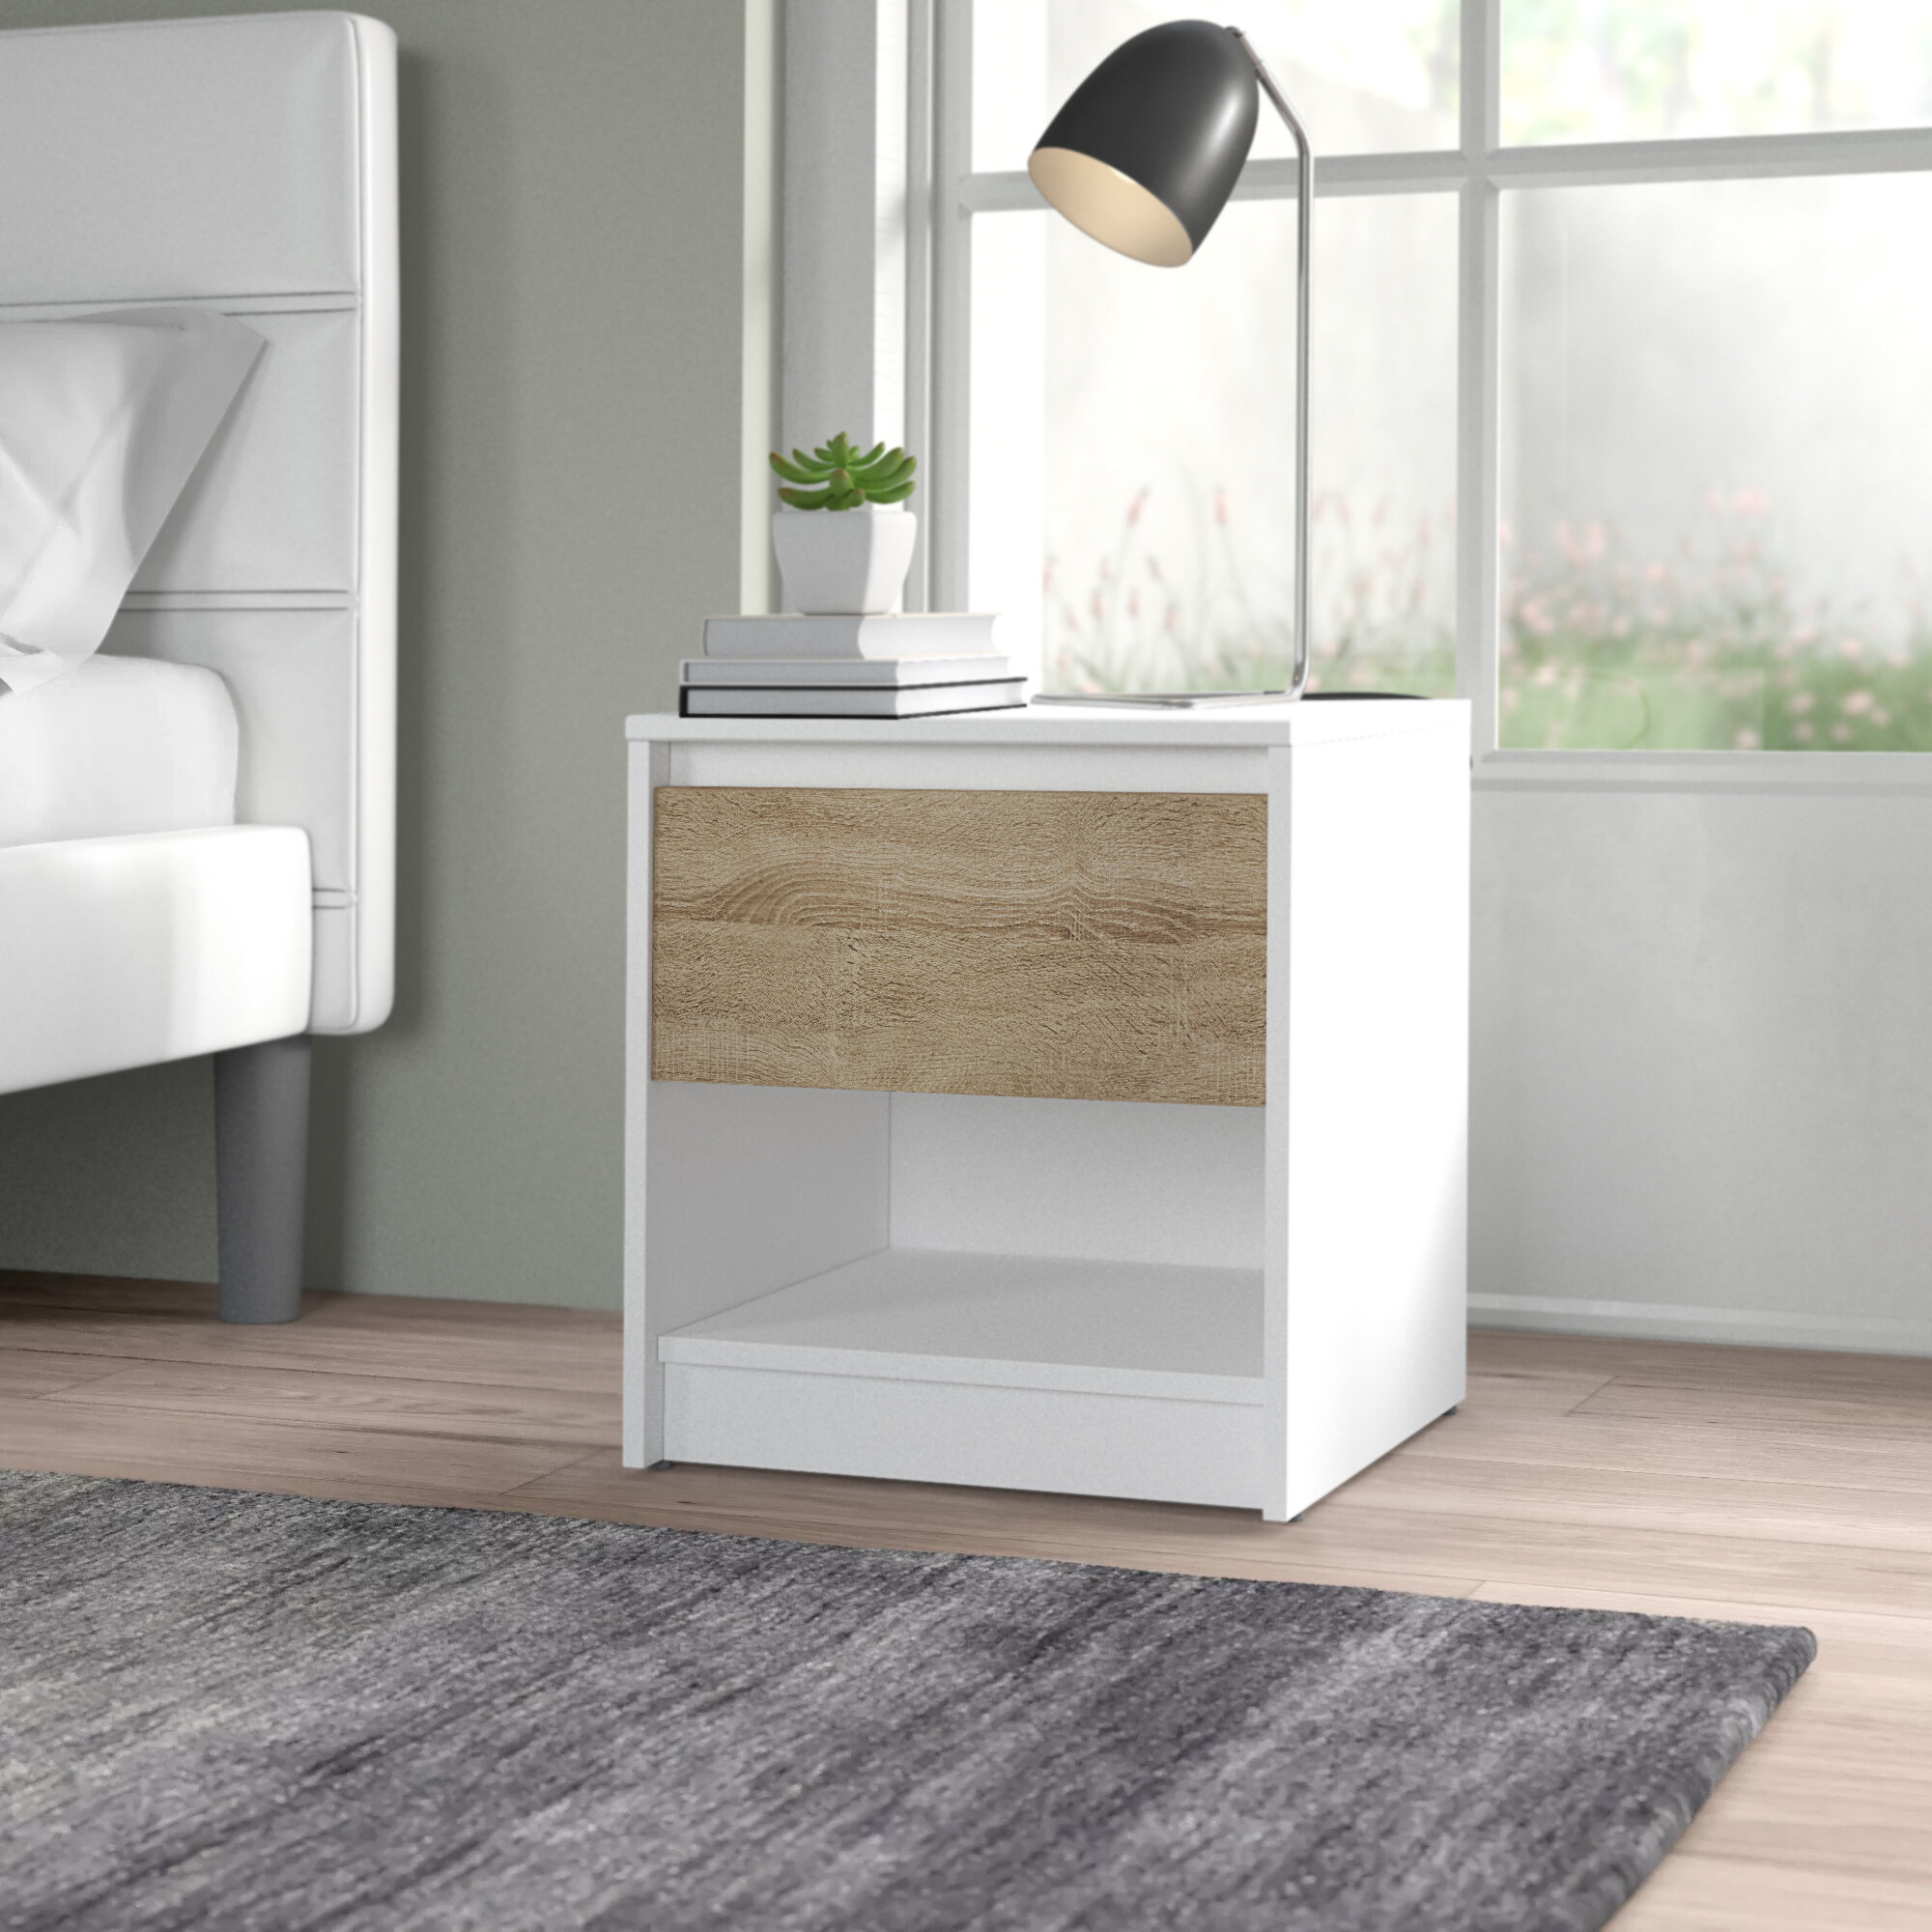 Urban Designs Wenecja 1 Drawer Bedside Table Reviews Wayfair Co Uk